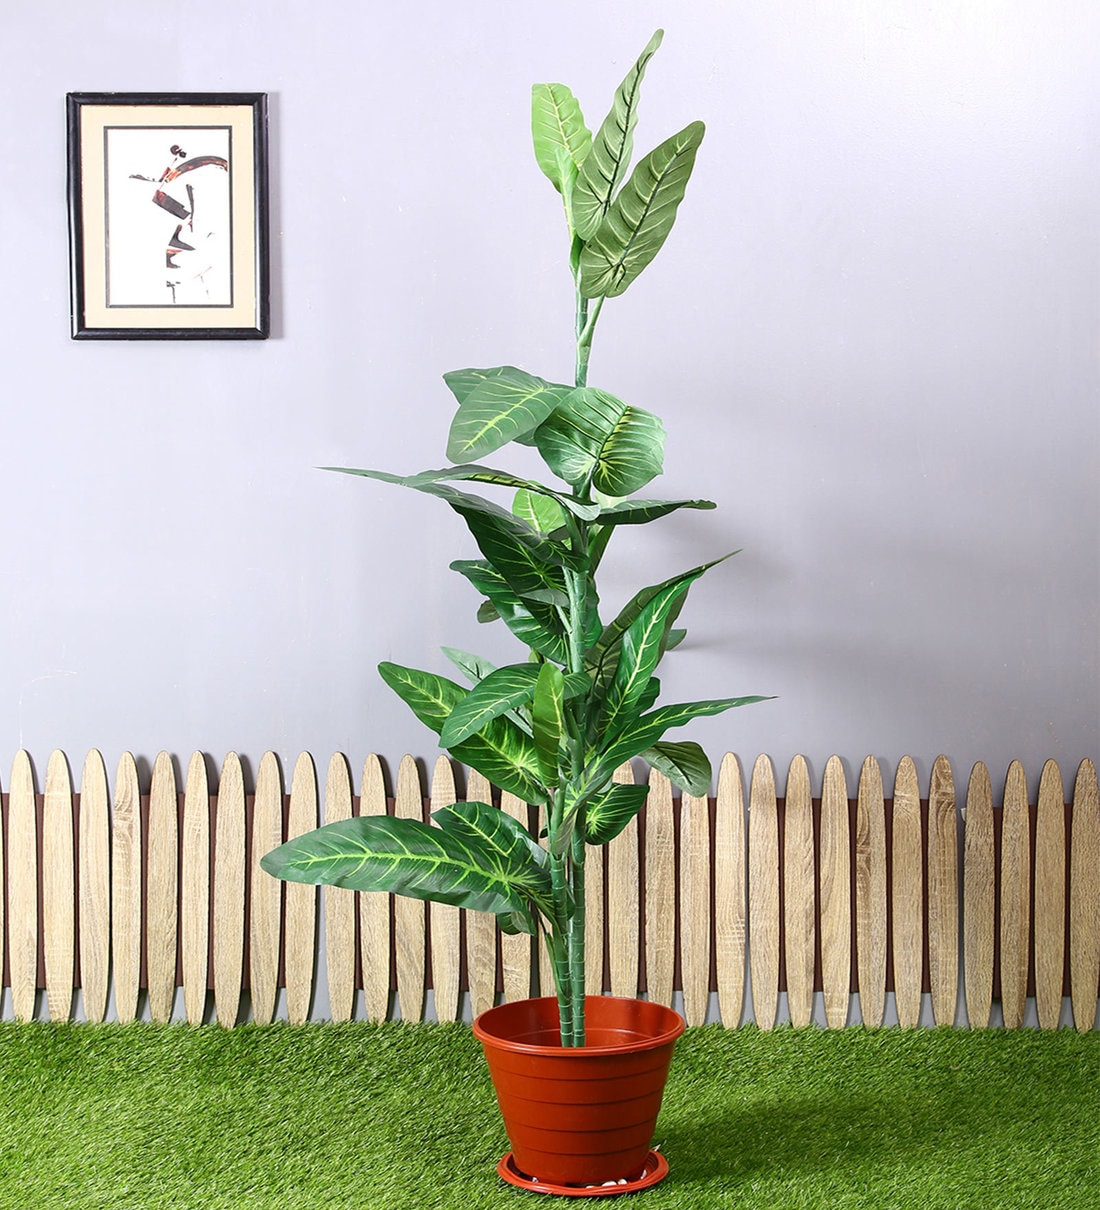 Buy Green Polyester Artificial Elephant Ear Plant Without Pot By Pollination Online Artificial Plants Artificial Plants Home Decor Pepperfry Product